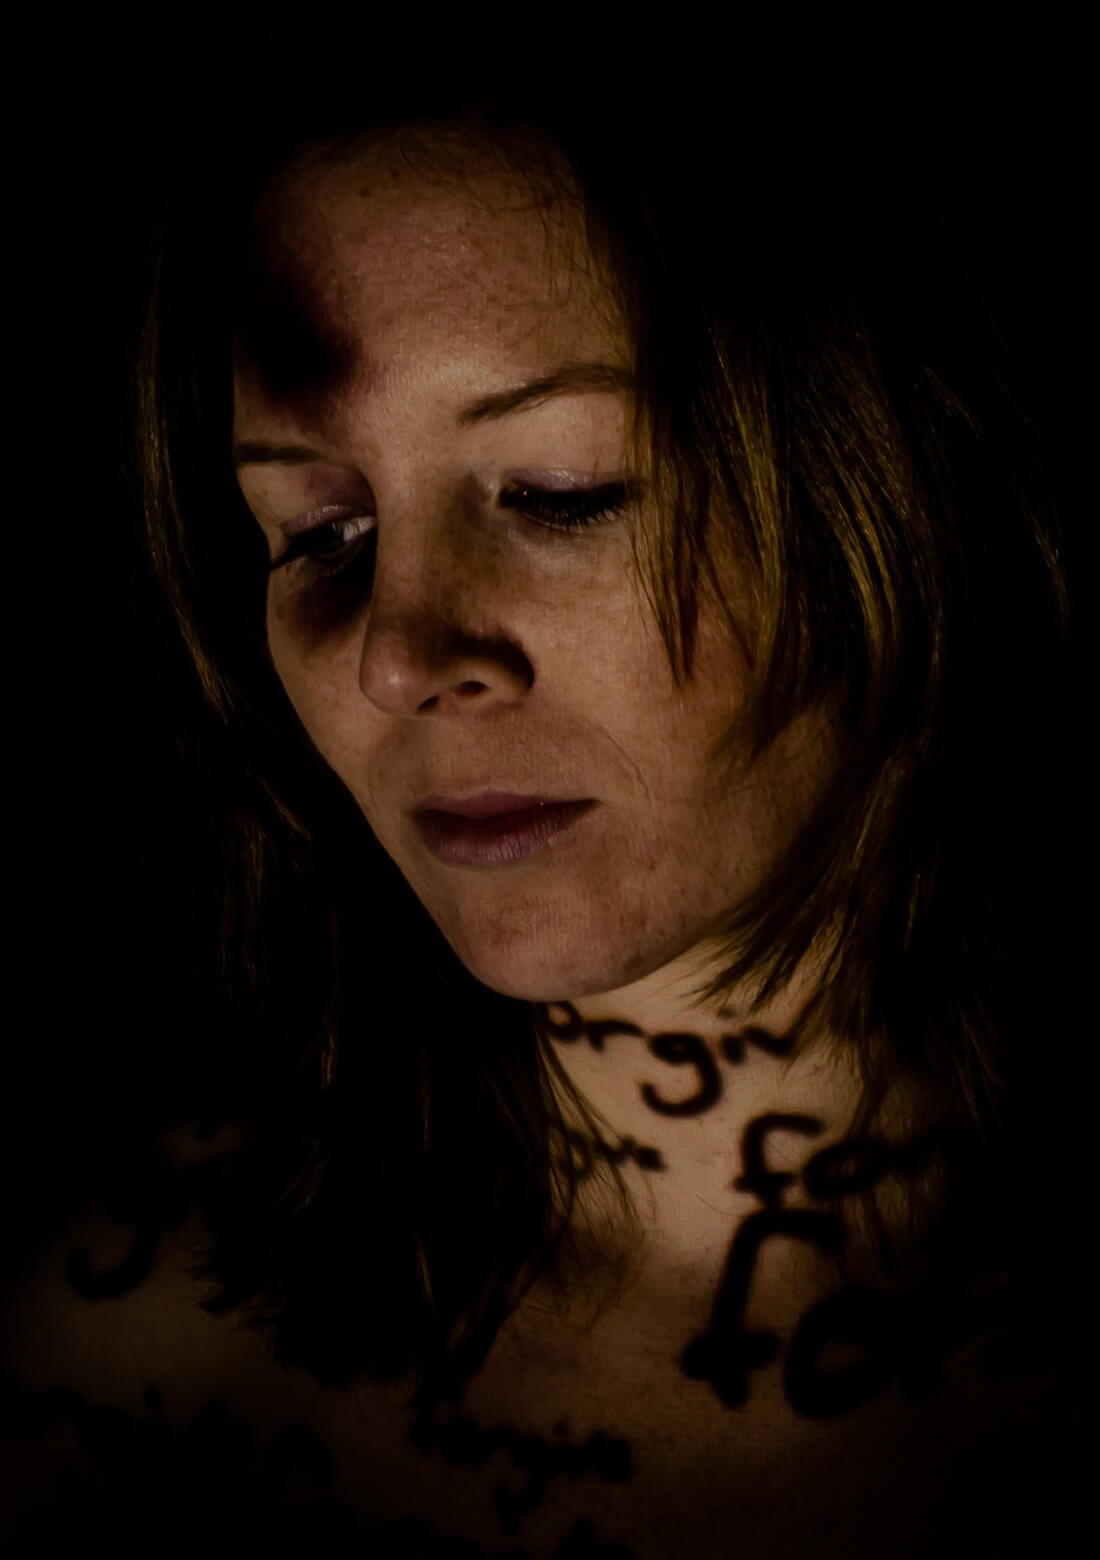 Fotoreportage battered women